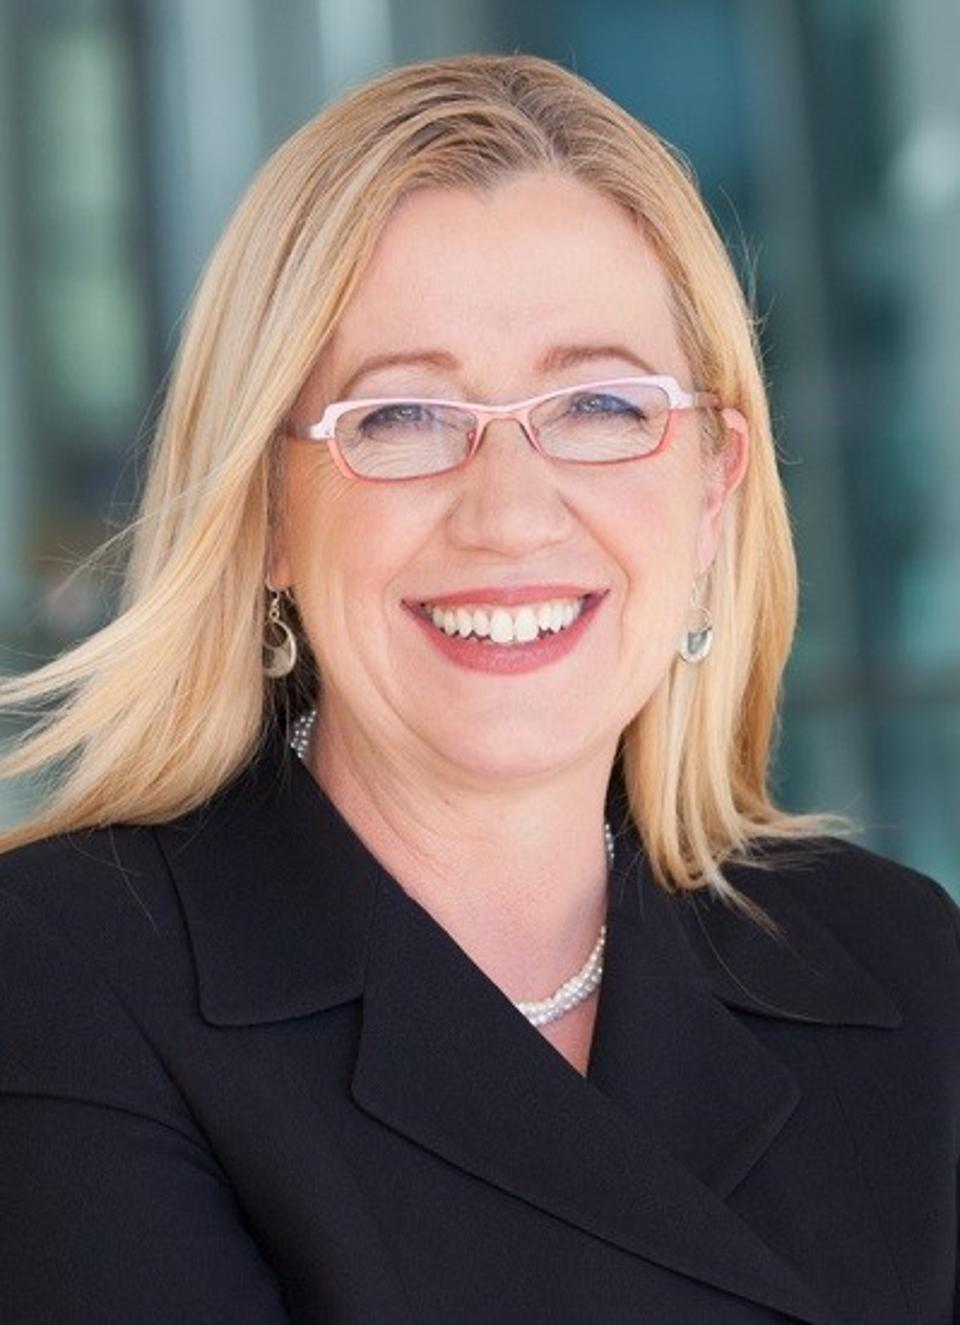 Anne Simpson, Managing Investment Director, Board Governance & Sustainability